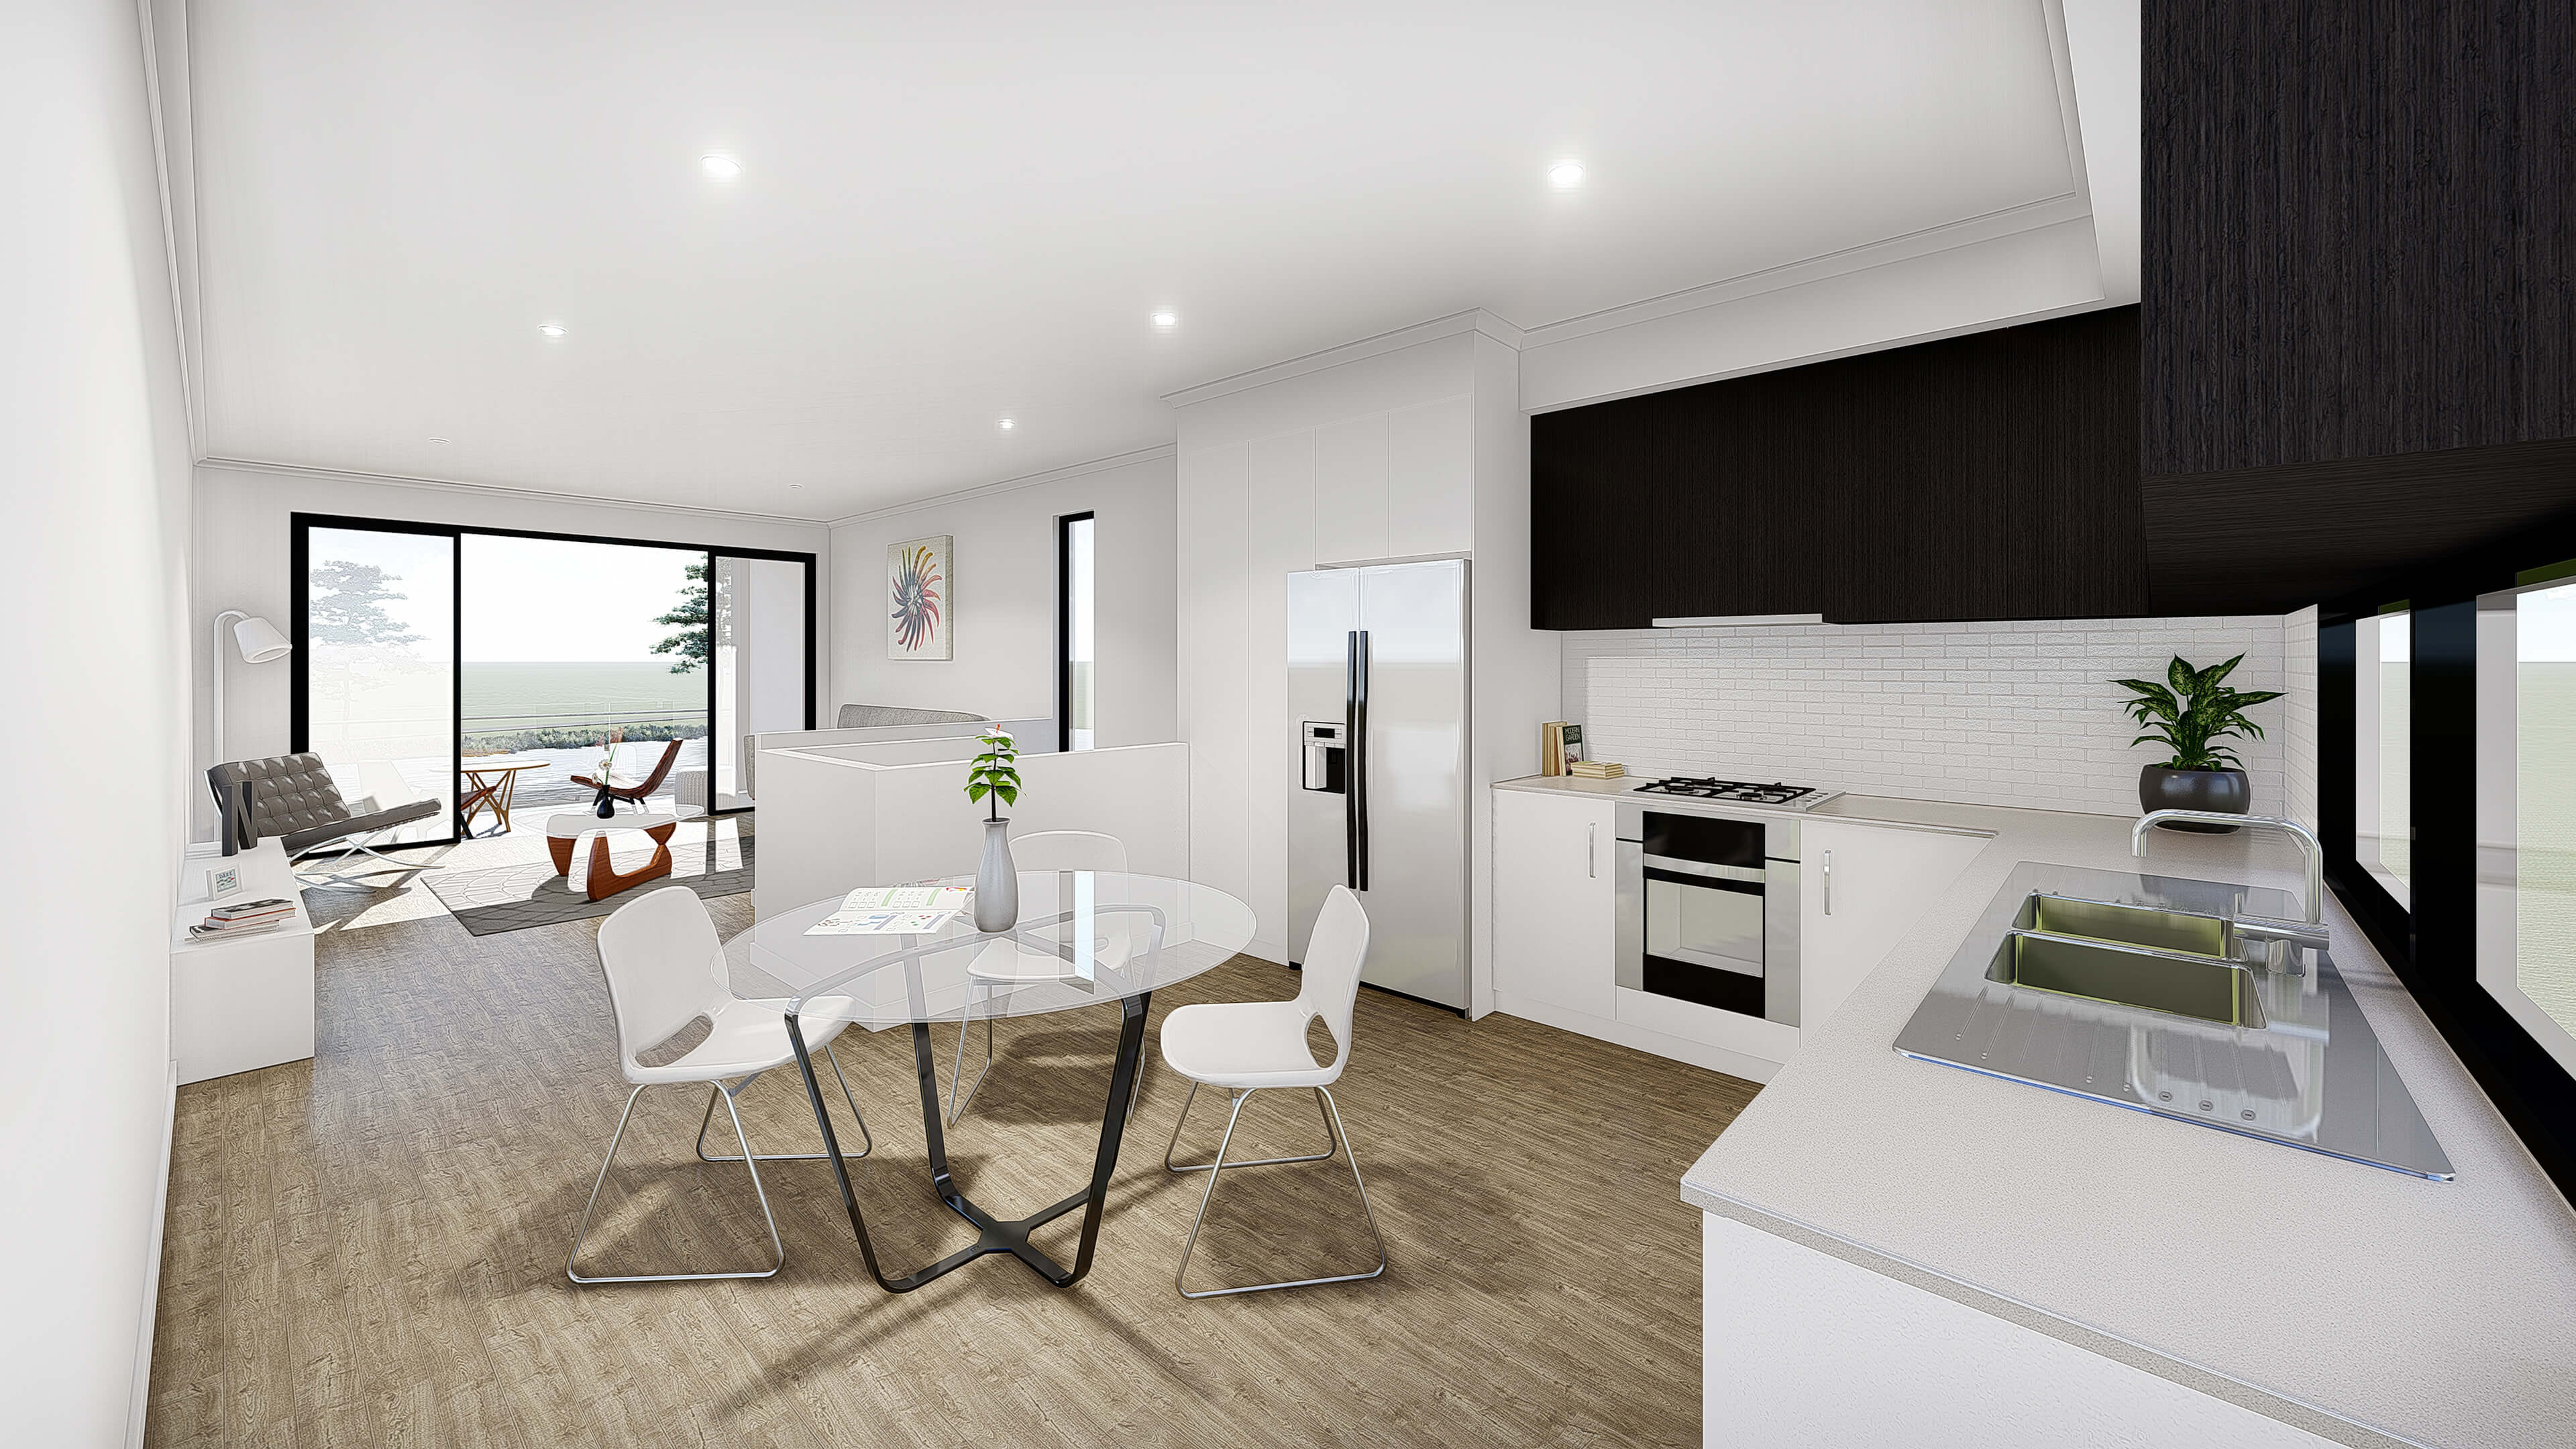 ST CLAIR'S FIRST TORRENS TITLED TOWN-HOUSE & LAND PACKAGES